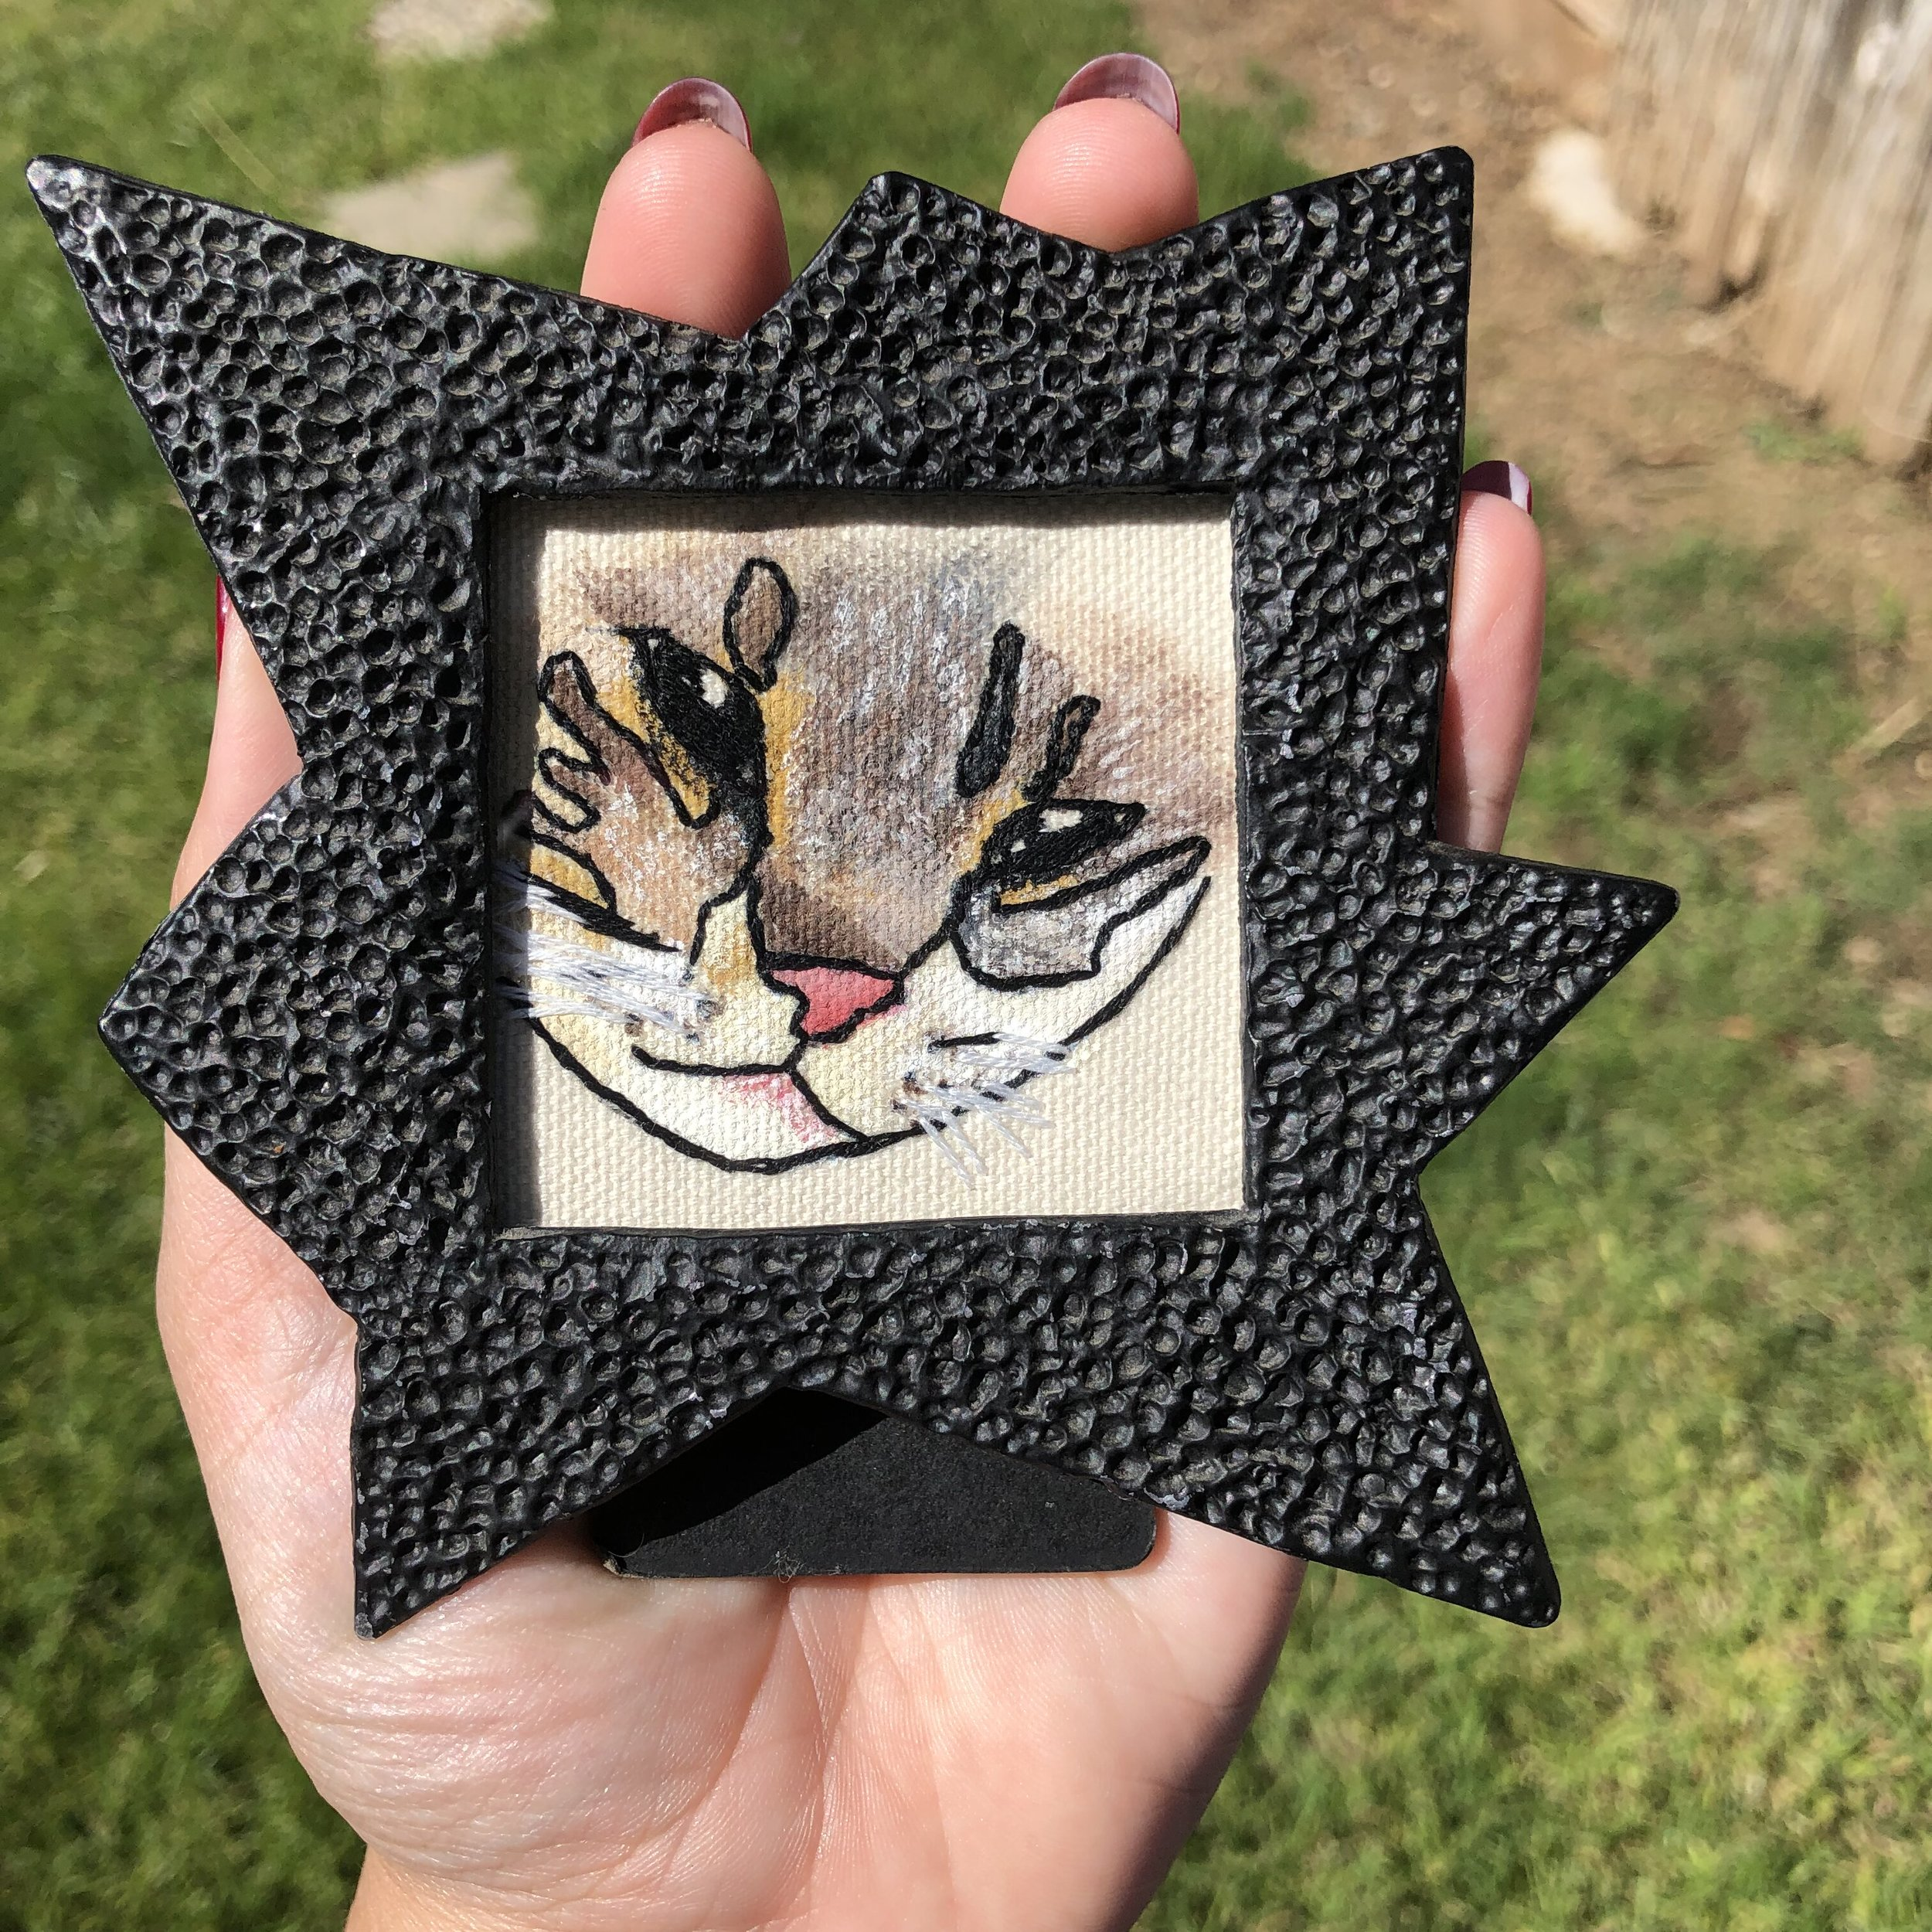 - I love the portrait of my kitty done by @existentialembroidery, I love the frame, craftsmanship, attention to detail and speediness with which this was done. You should definitely commission something from this talented artist!